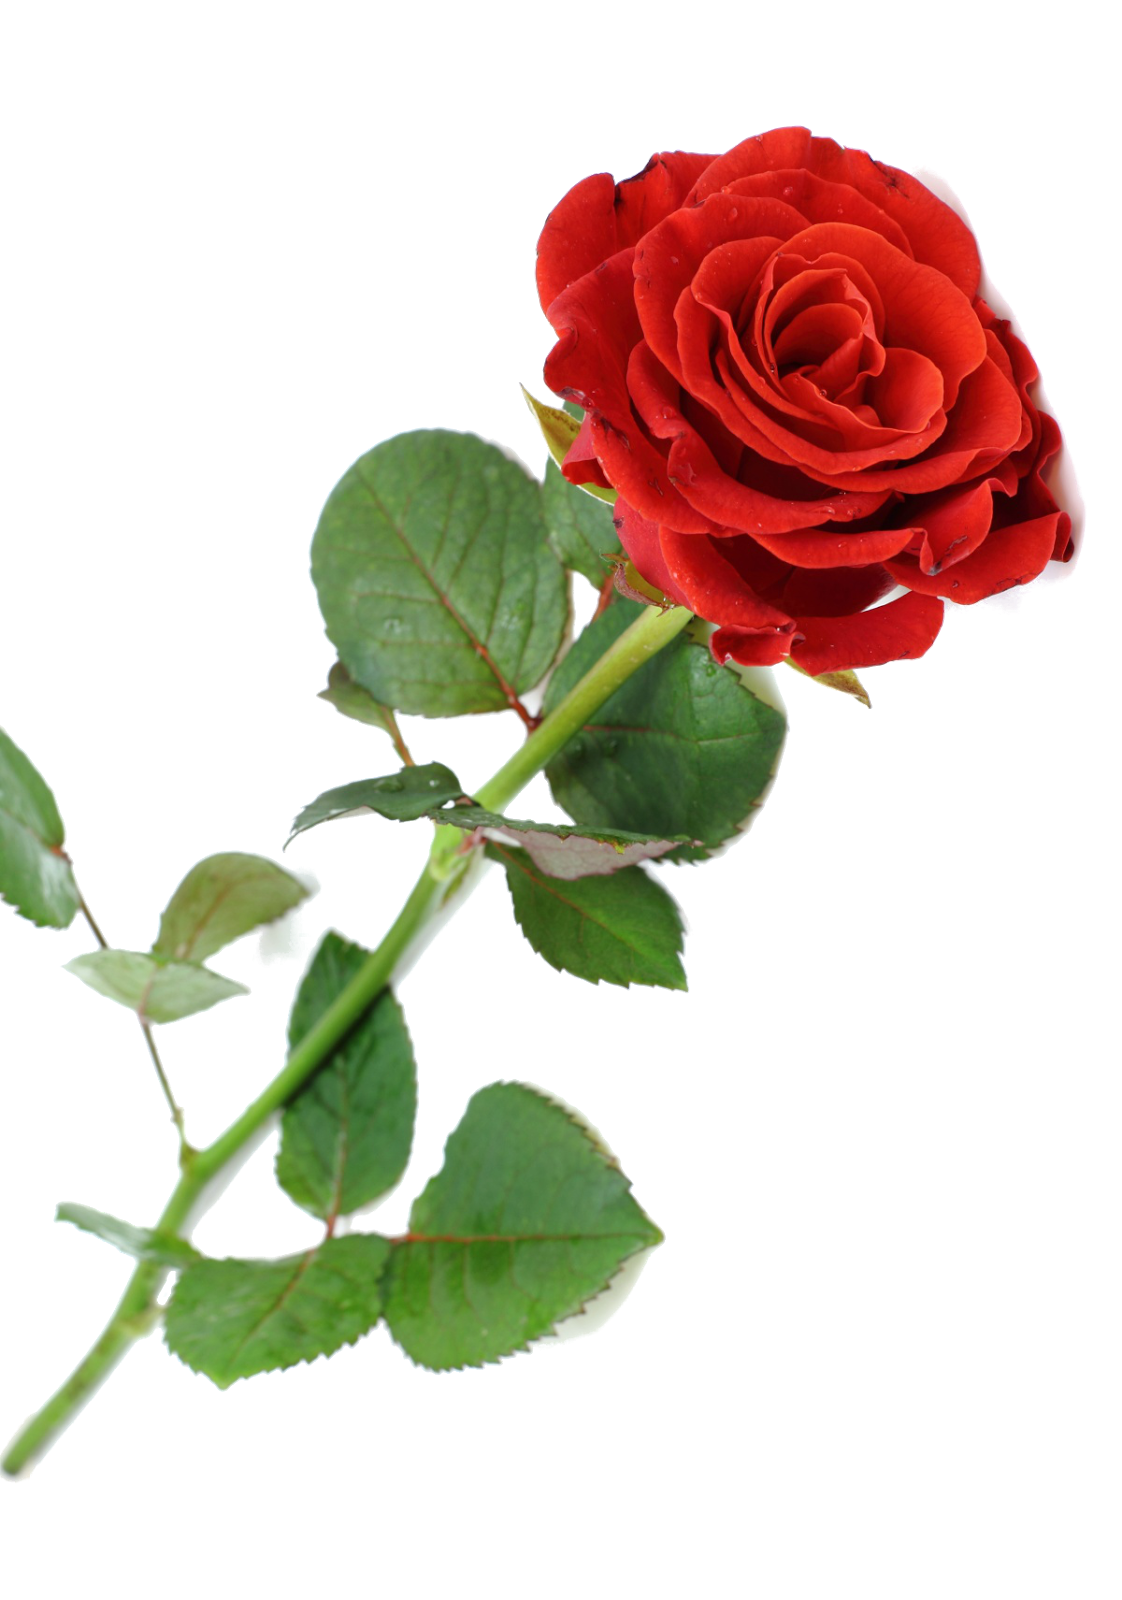 Rosa vermelha png clipart images gallery for free download.